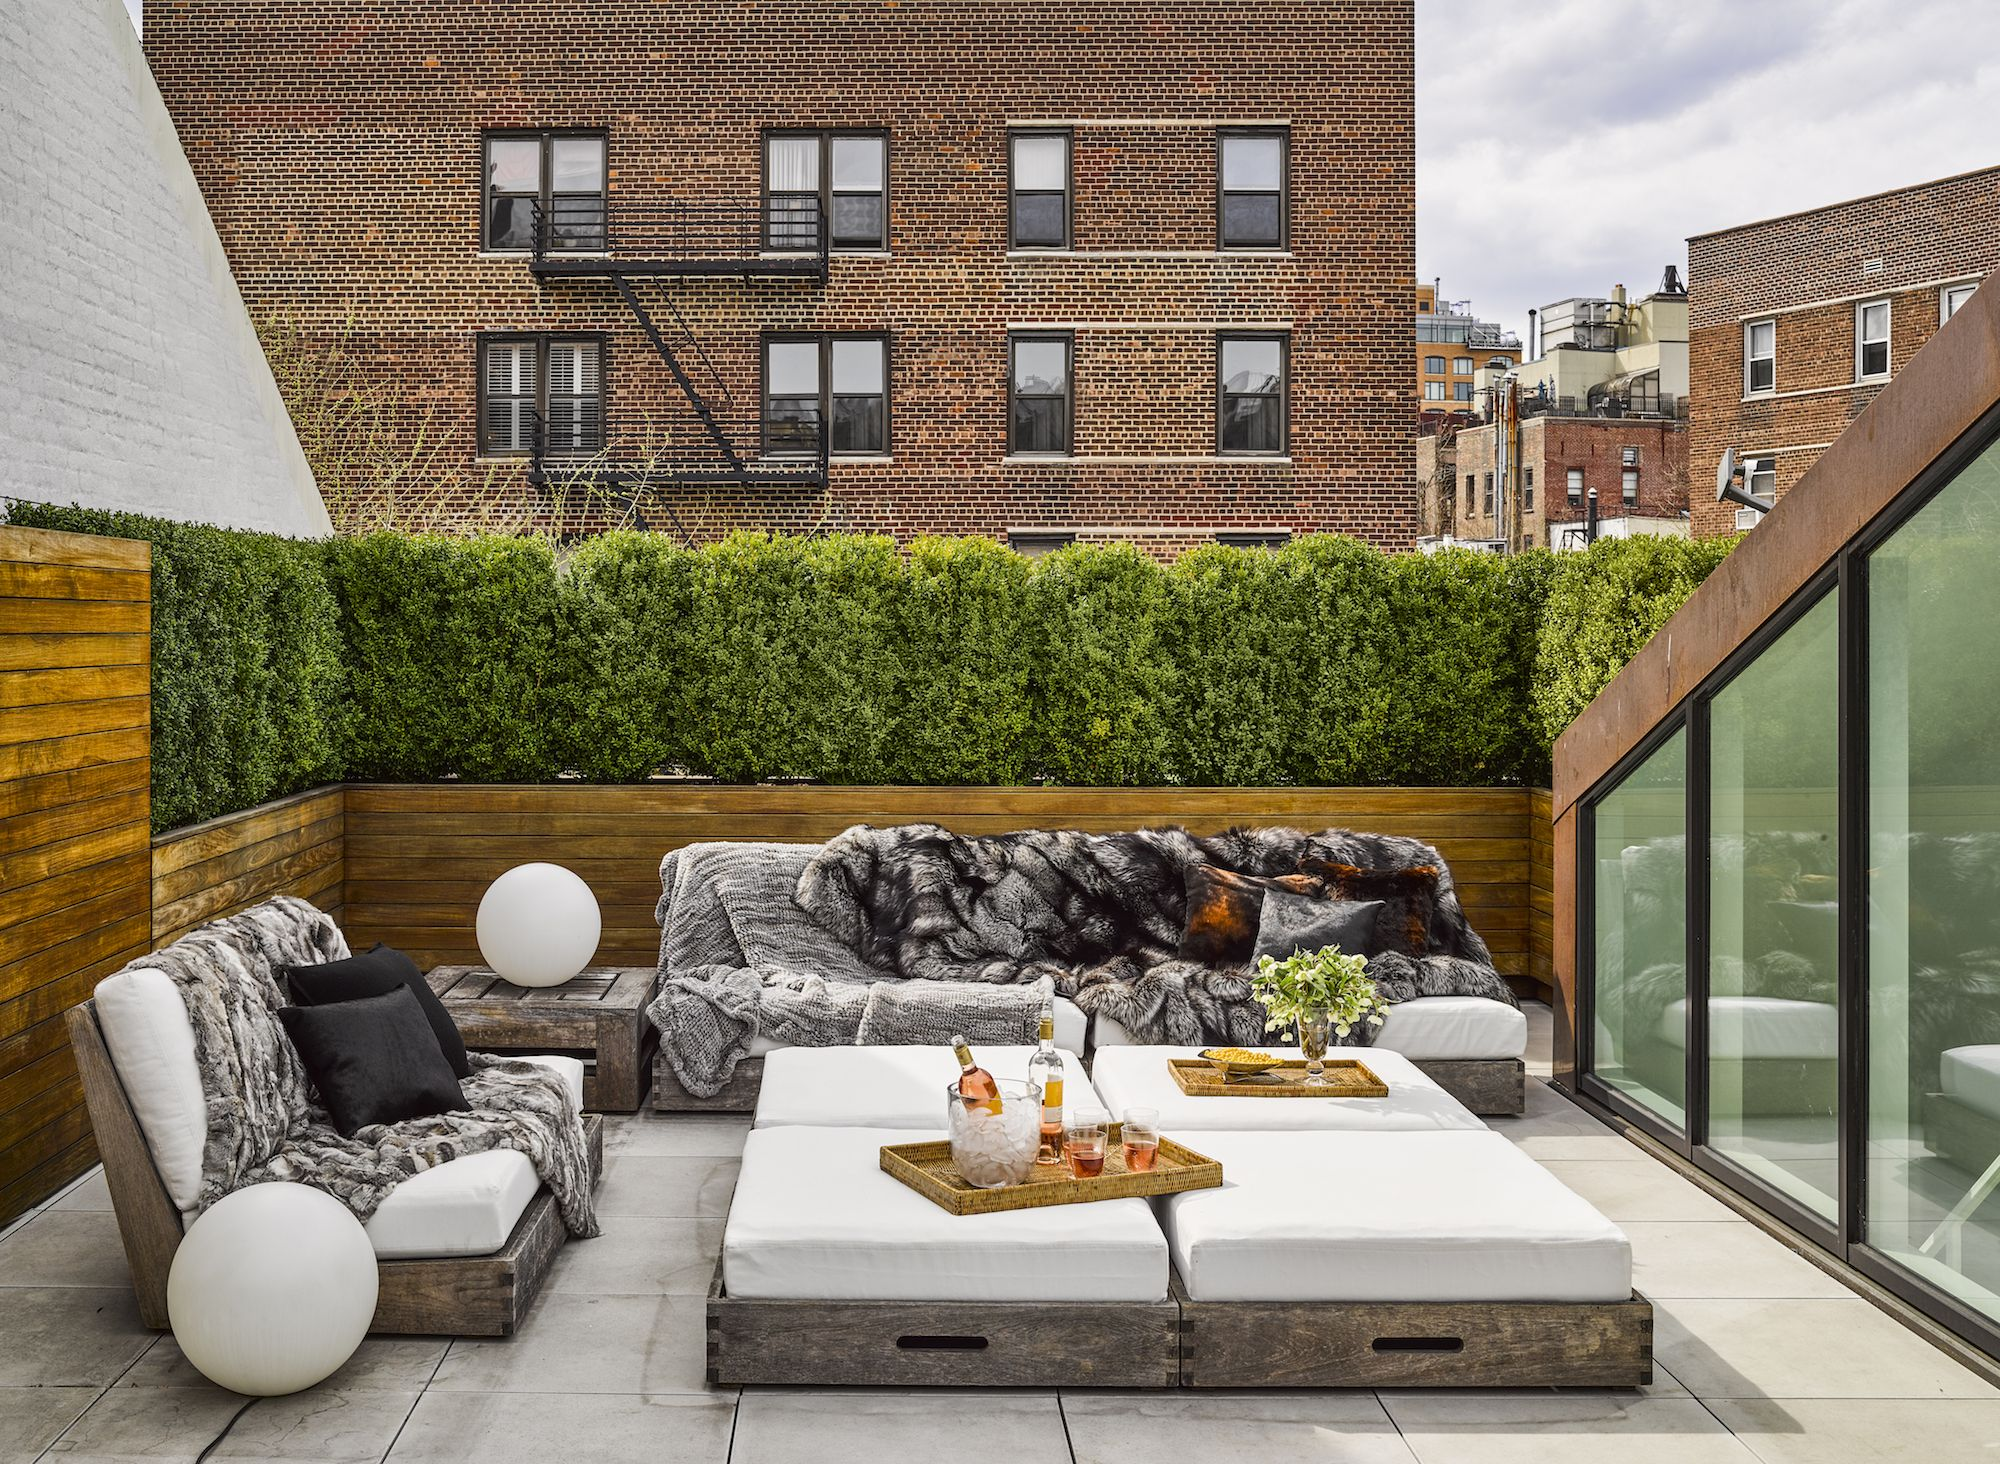 40 Small Patio Ideas Perfect For Entertaining & 16 Best Apartment Size Sofas - Couches for Small Apartments